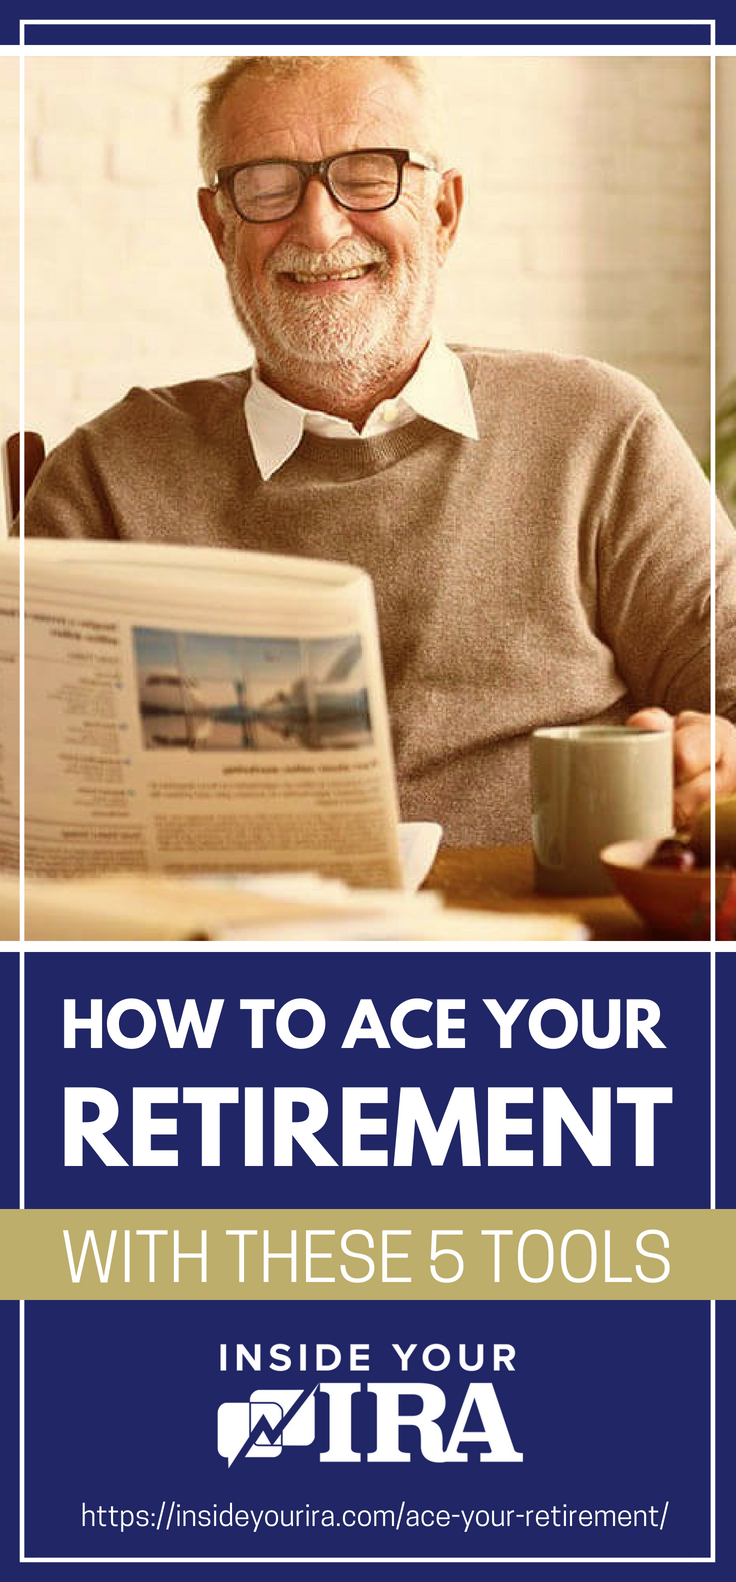 How To Ace Your Retirement With These Tools | Inside Your IRA https://insideyourira.com/ace-your-retirement/